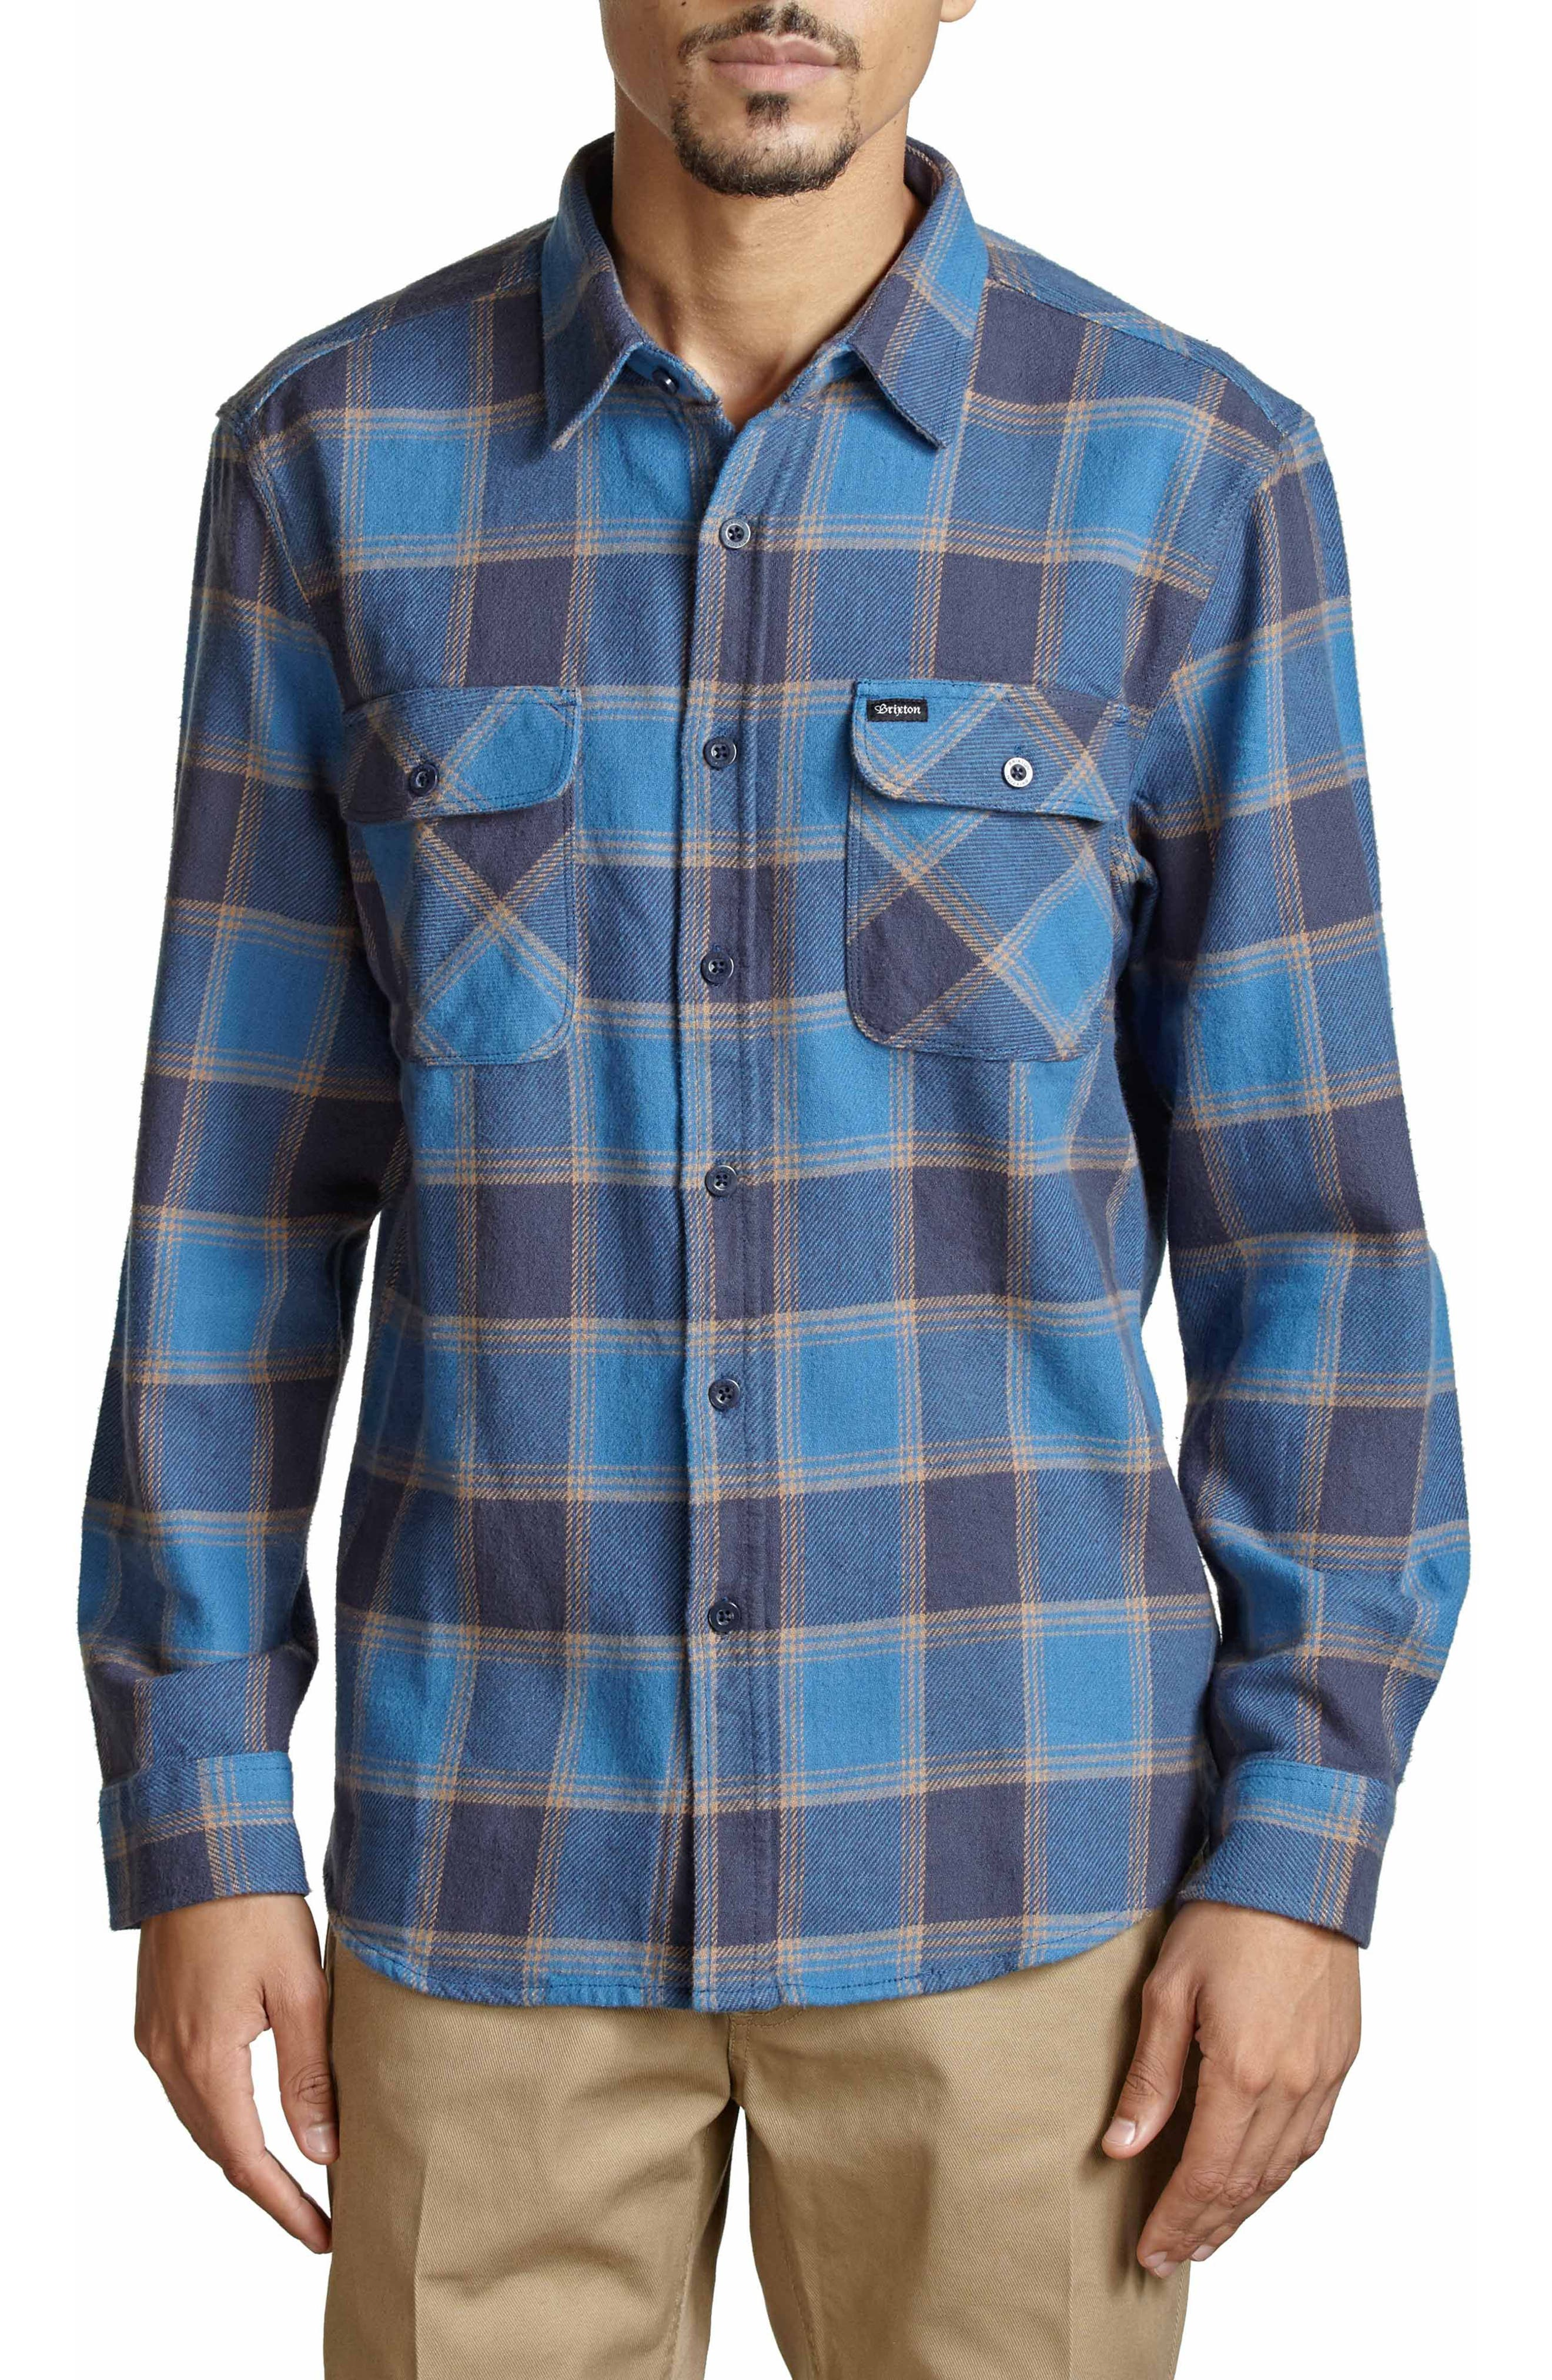 Bowery Flannel Shirt,                         Main,                         color, Blue/ Navy